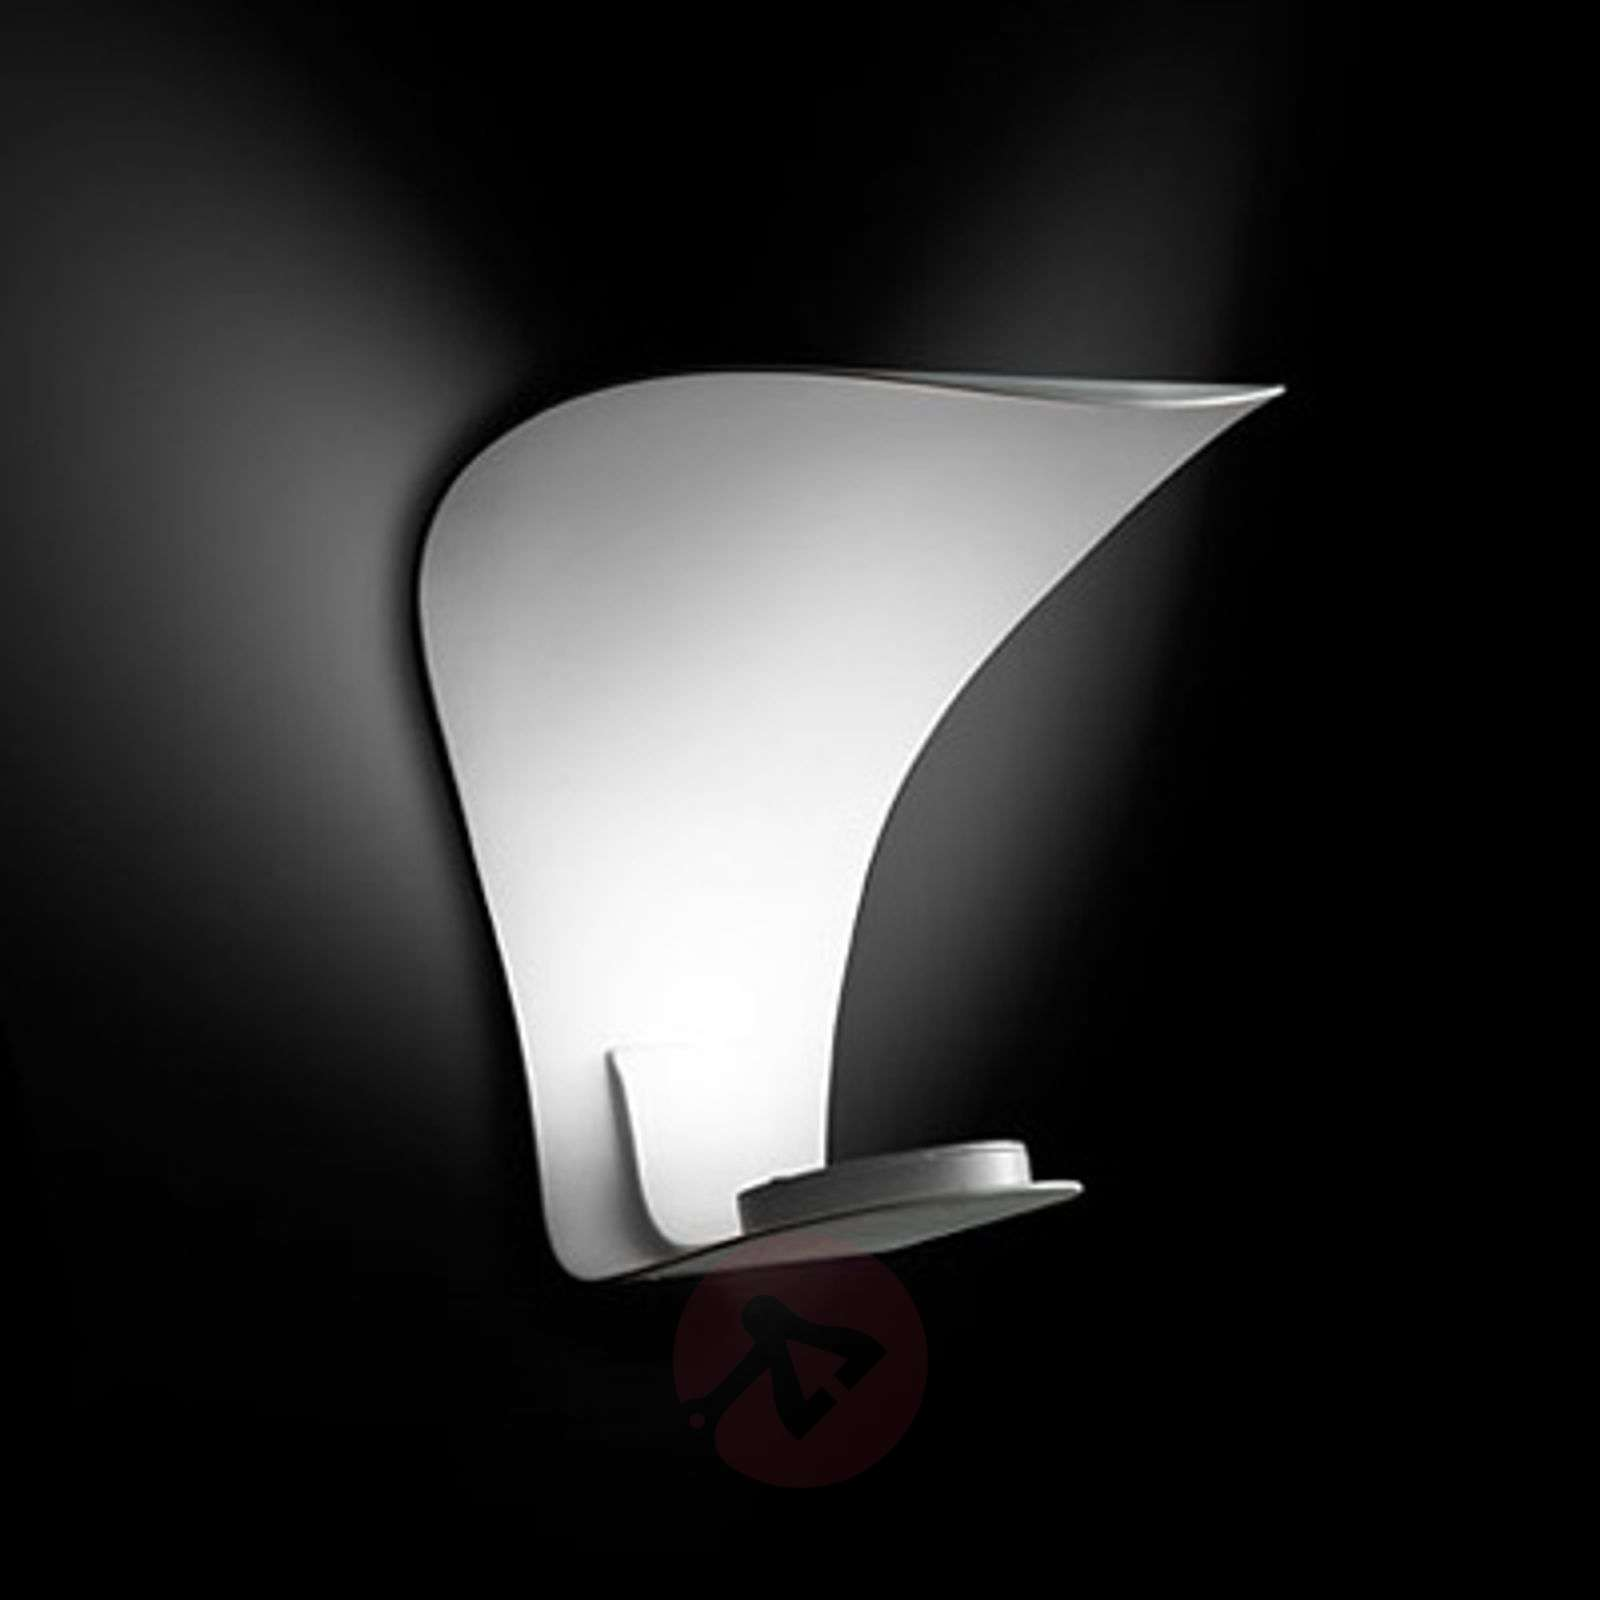 Designer LED wall light Voilà with indirect light-7265085-01